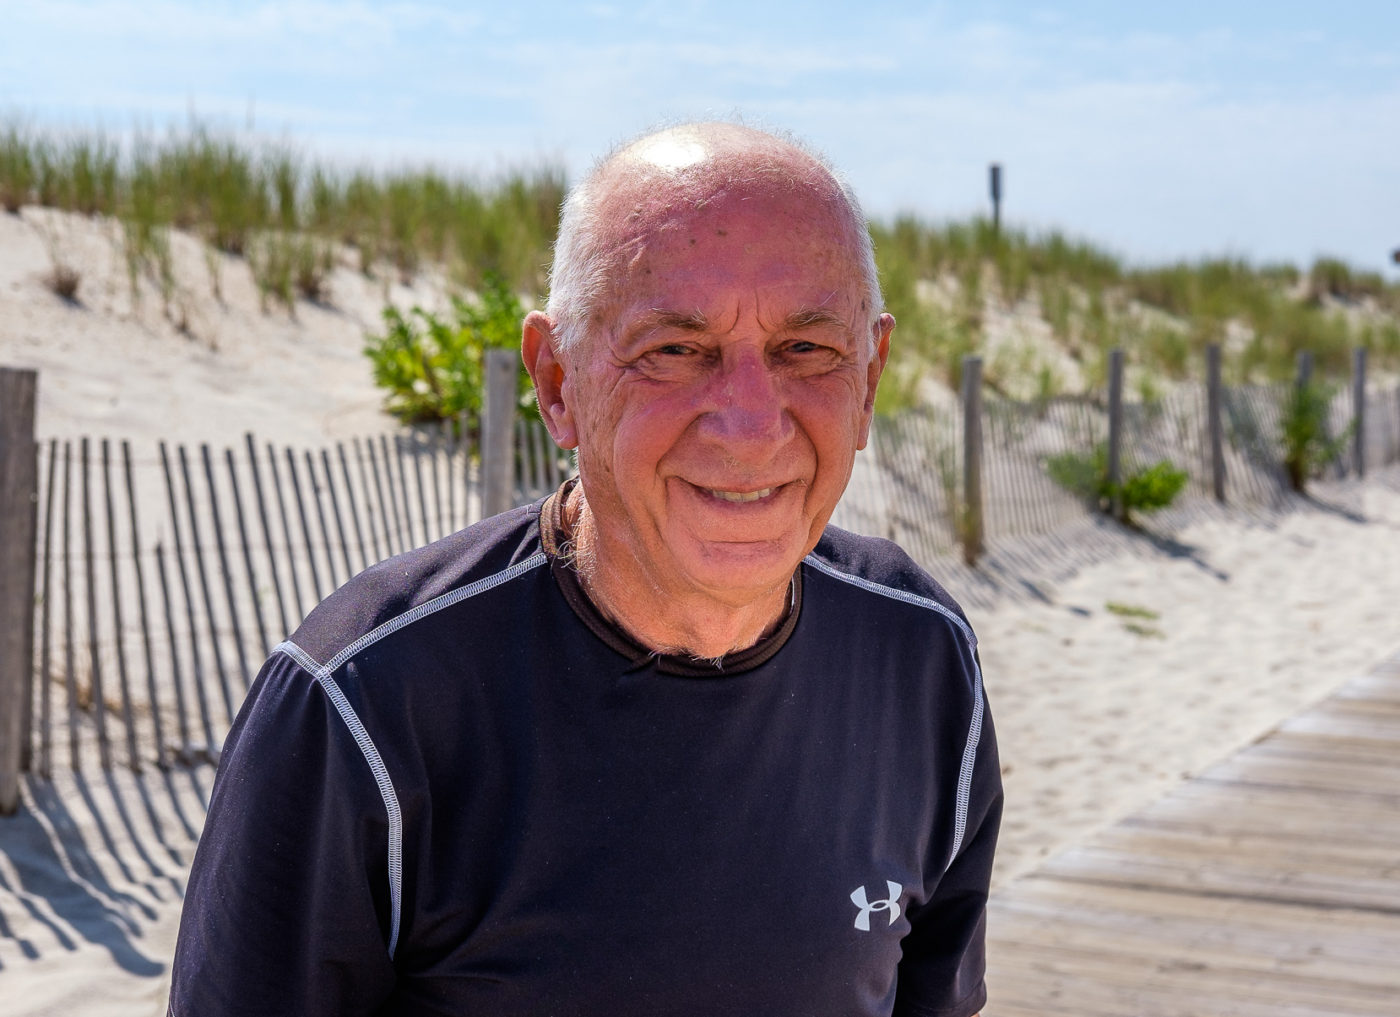 portraits of the jersey shore anti bullying advocate -